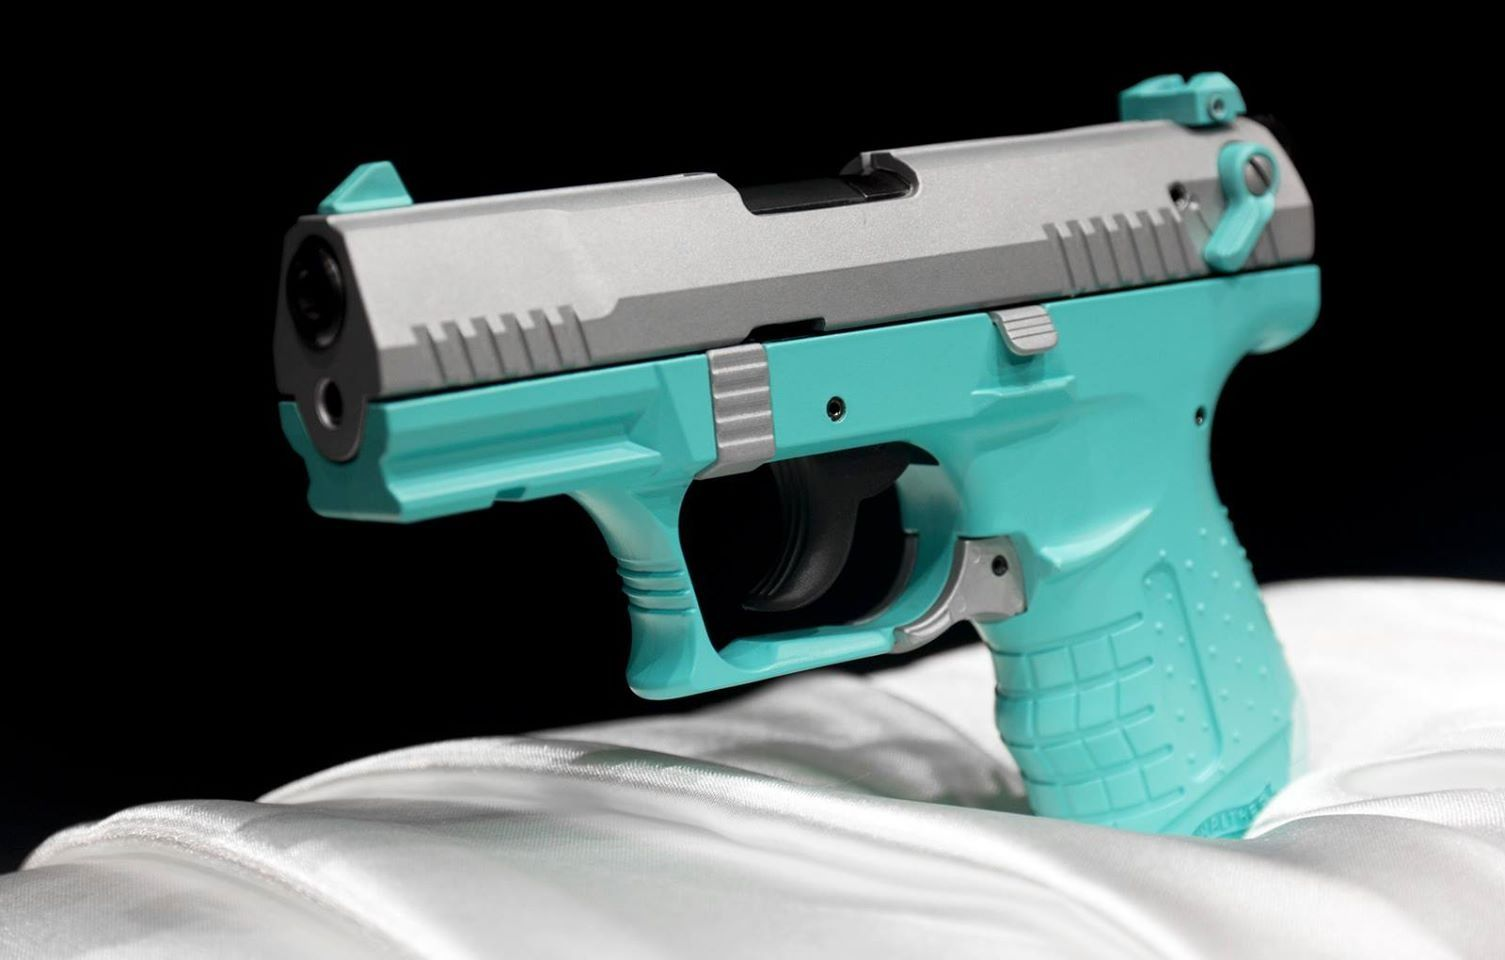 Totally against anything but black and gunmetal gray guns, but this color scheme is pretty friggin awesome